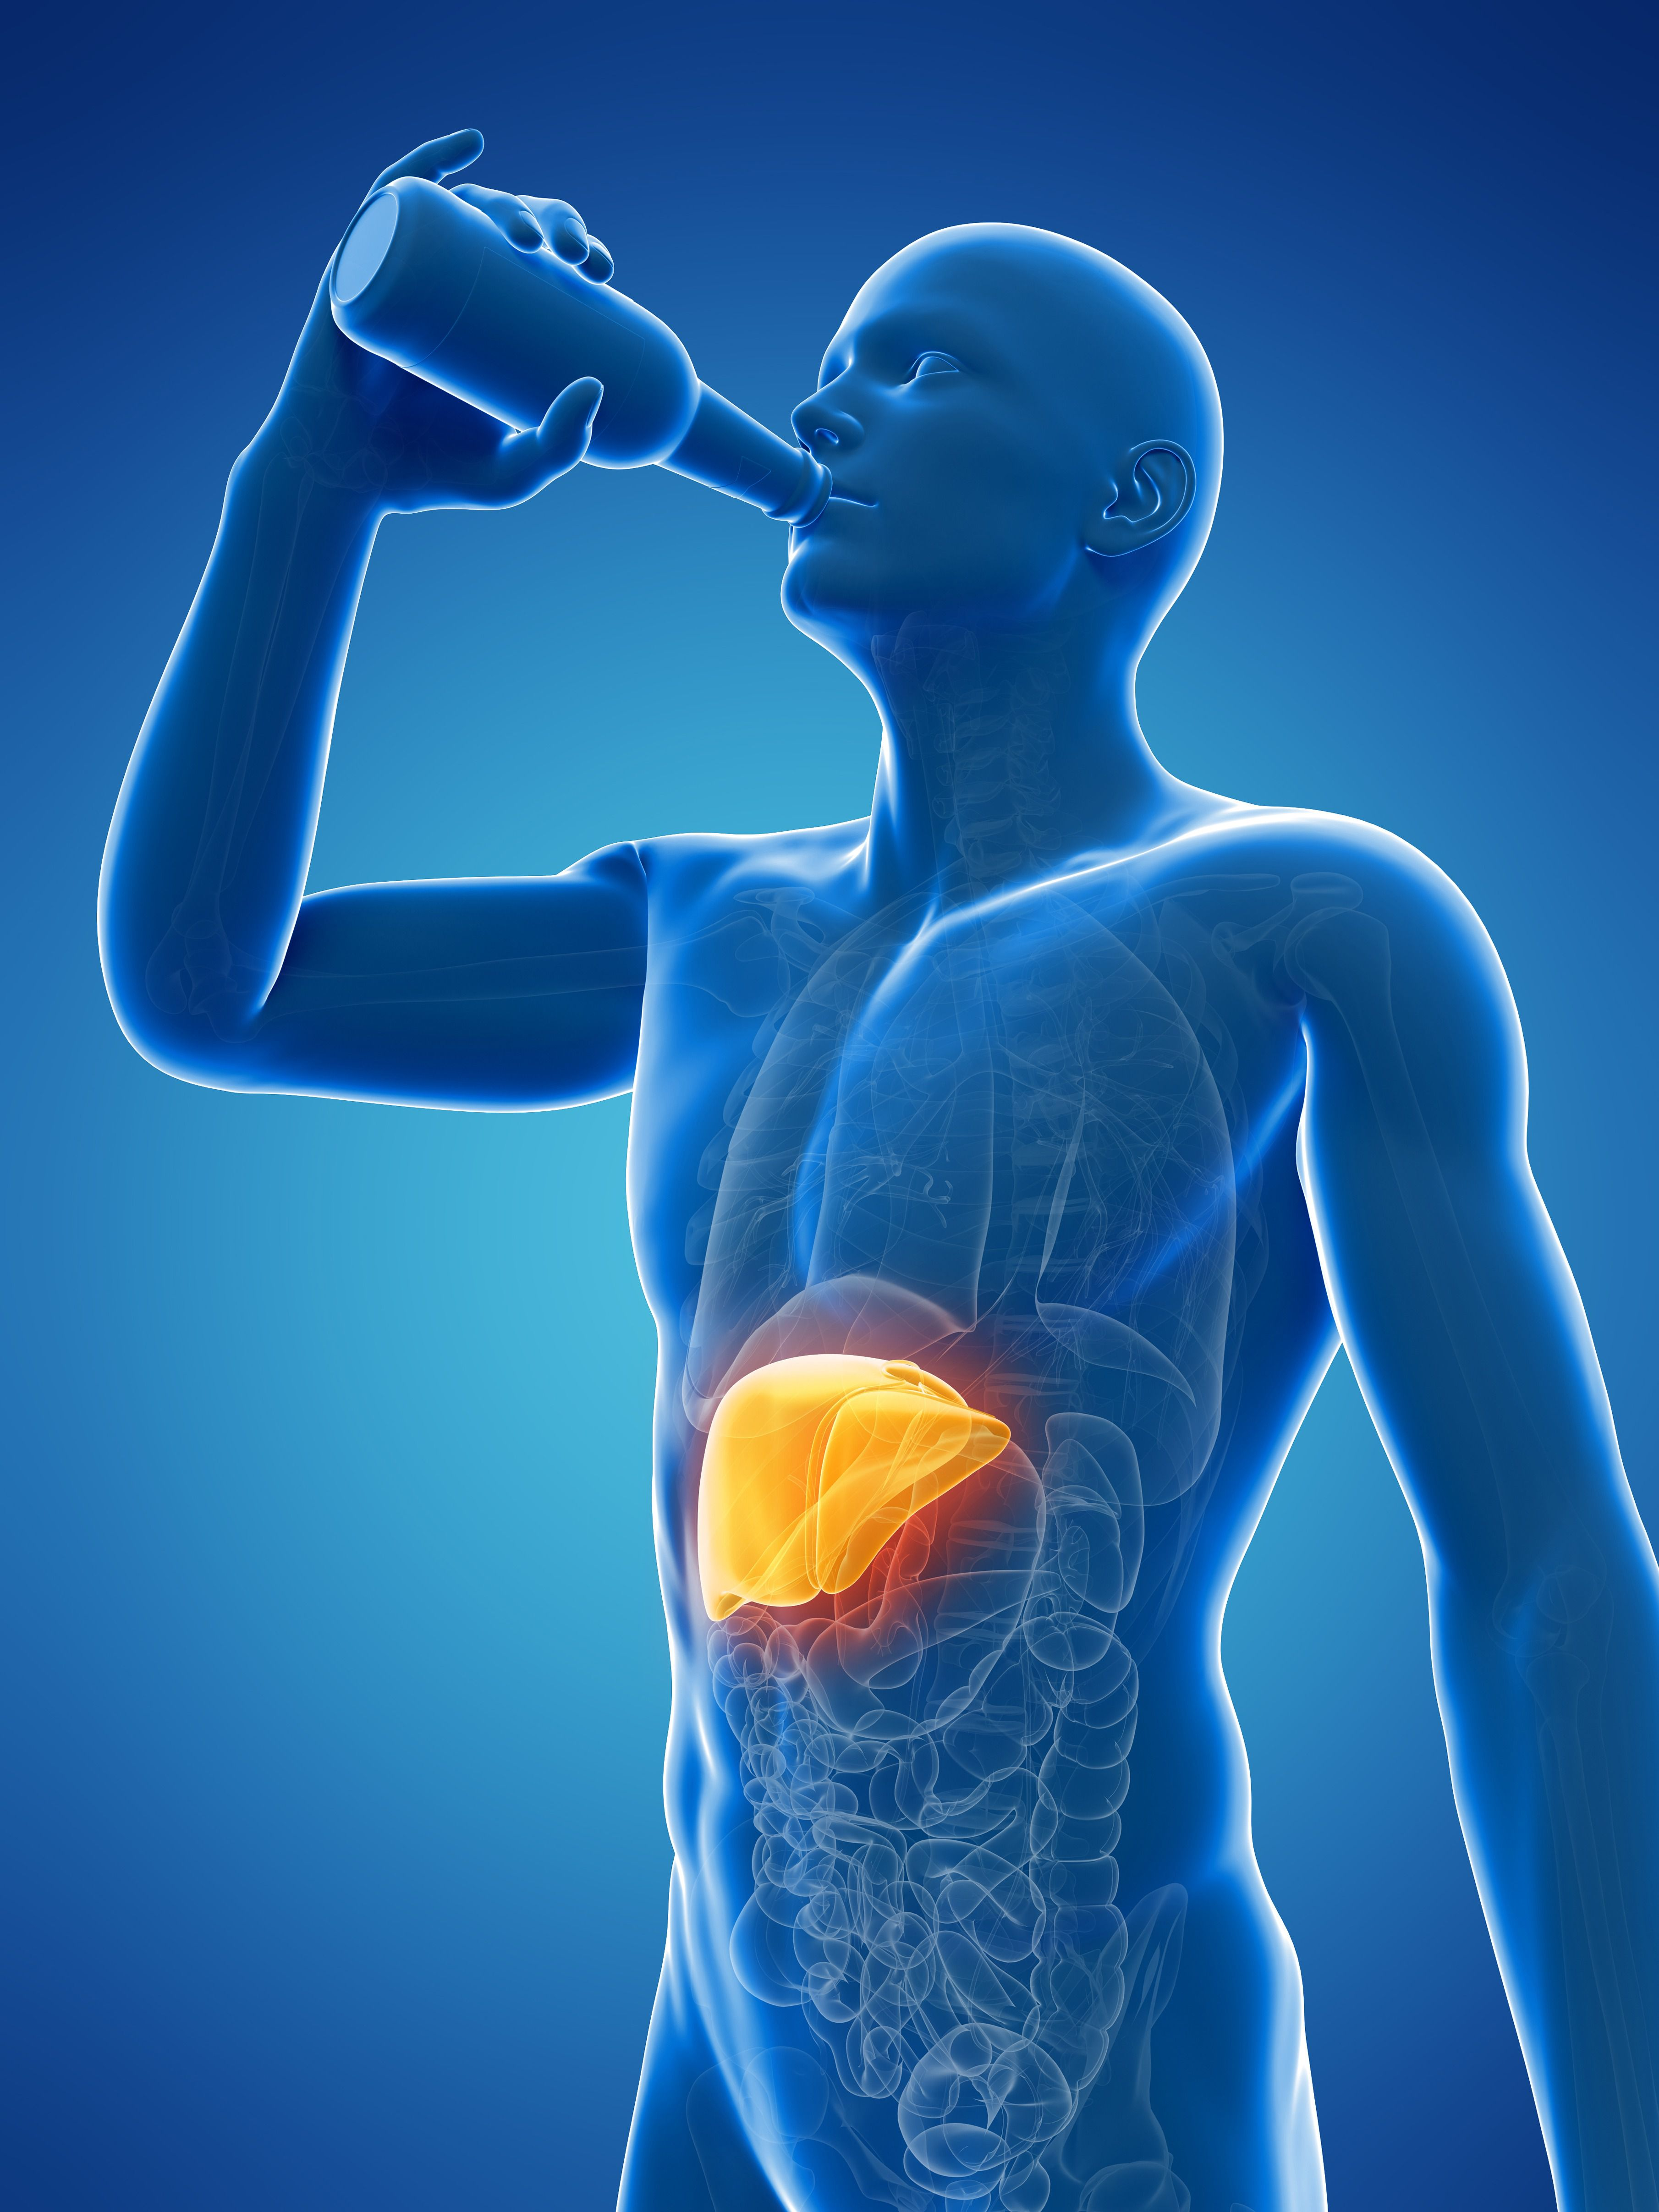 Why Does Cirrhosis Of The Liver Threaten Heavy Drinkers